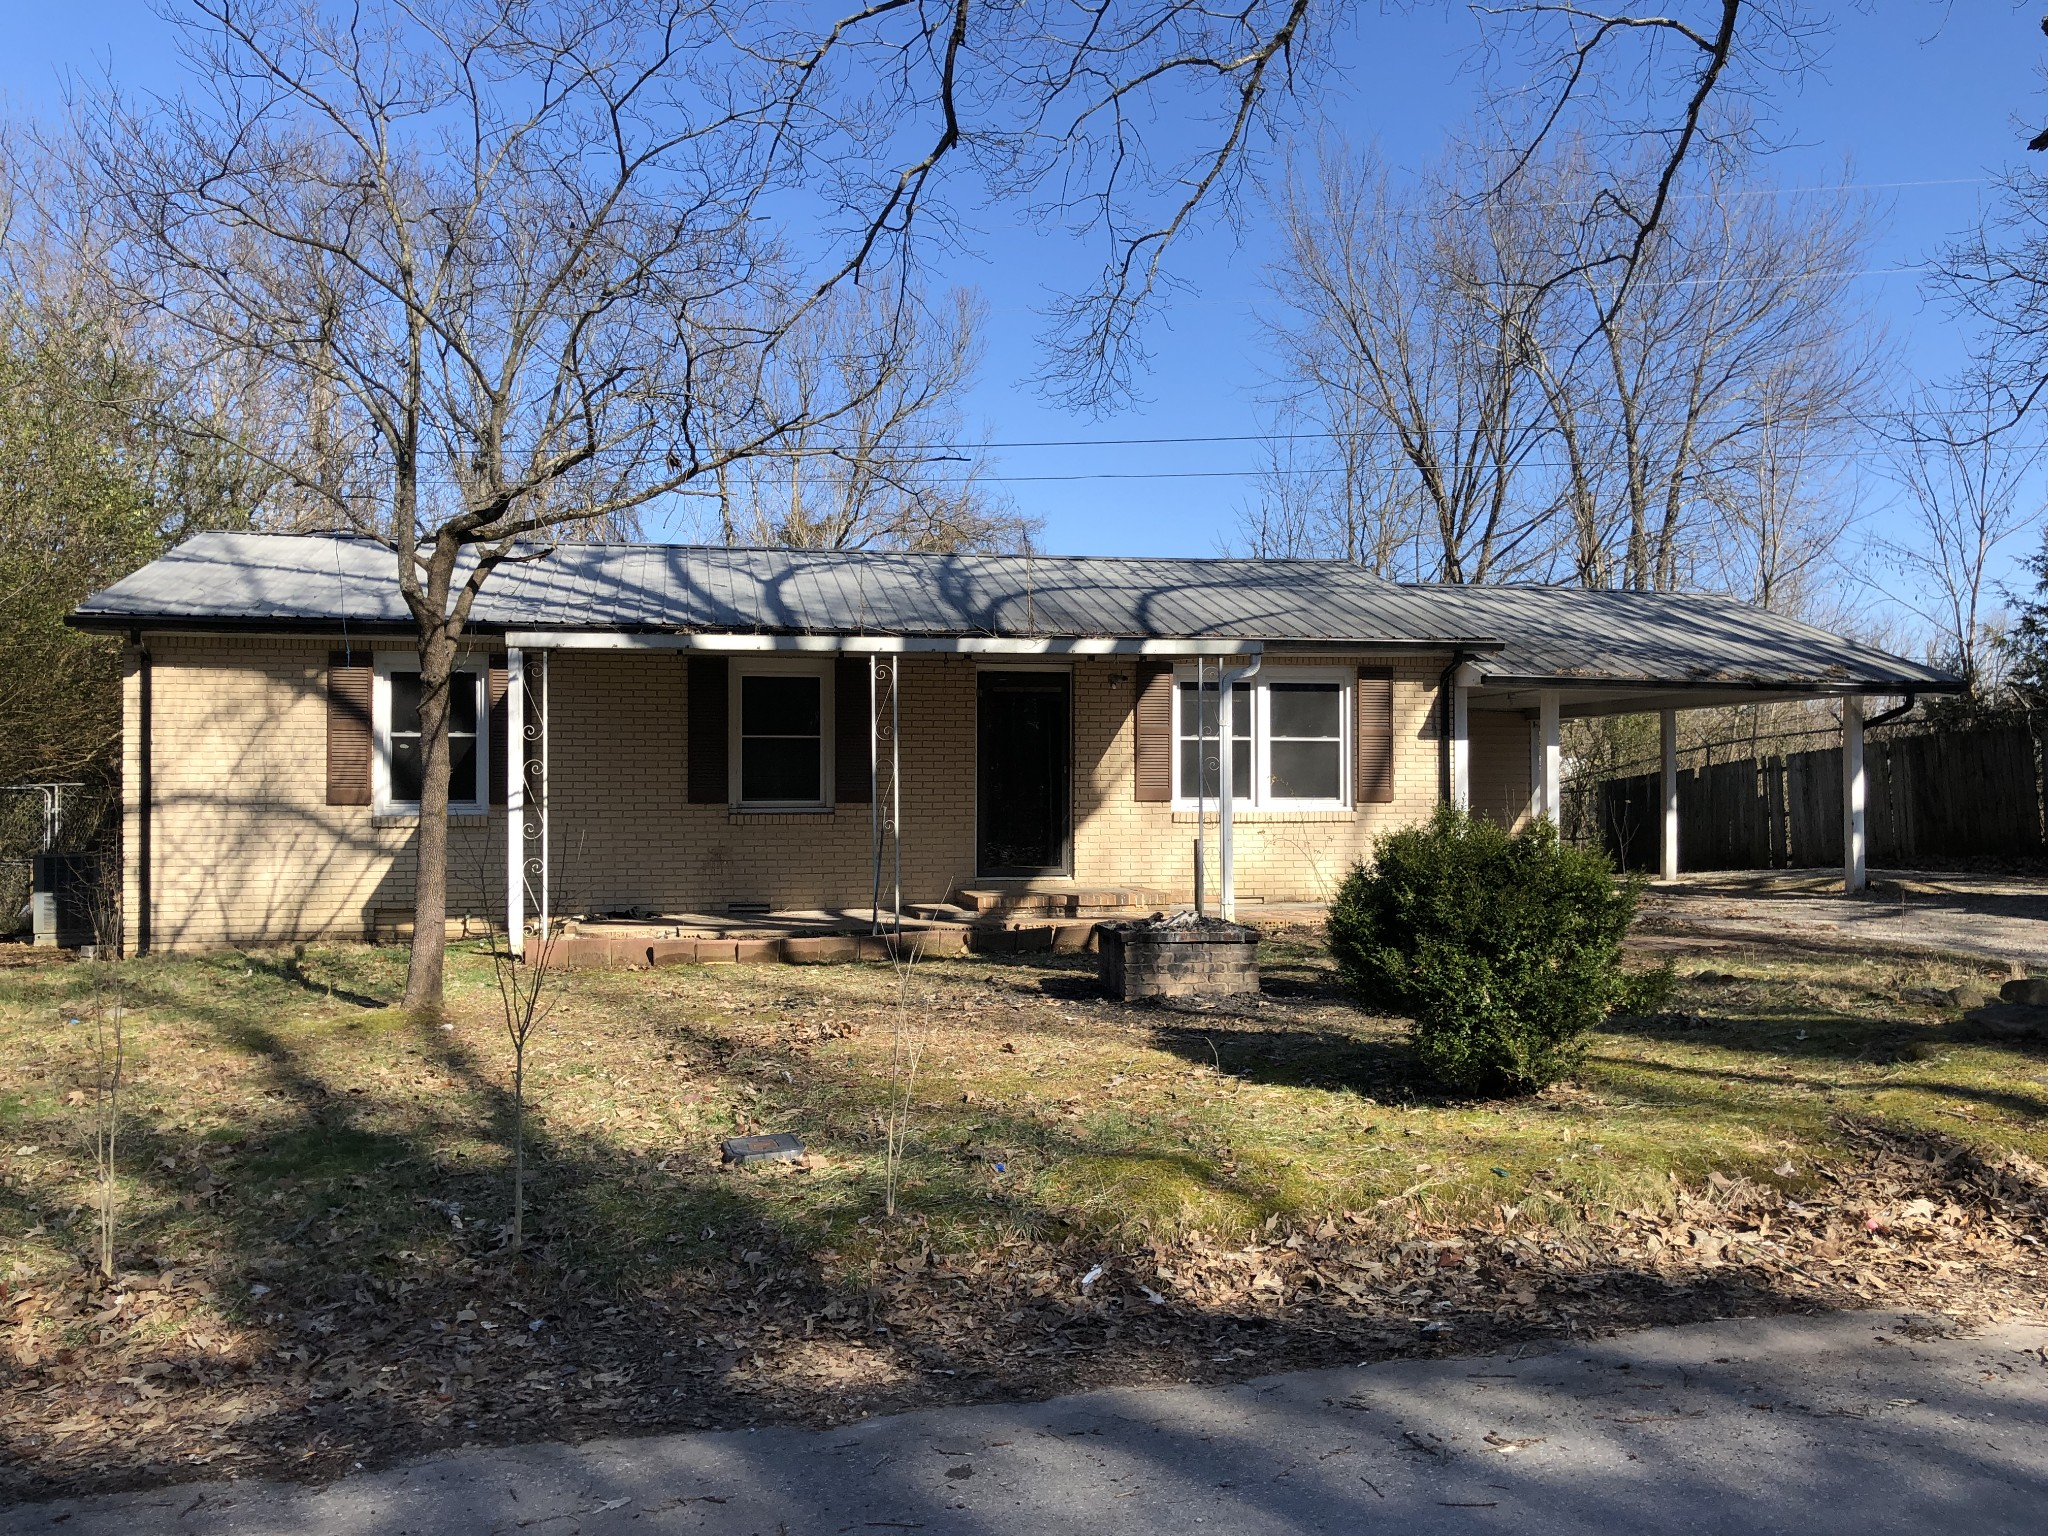 68 Quinland Lake Rd, Cookeville, TN 38506 - Cookeville, TN real estate listing